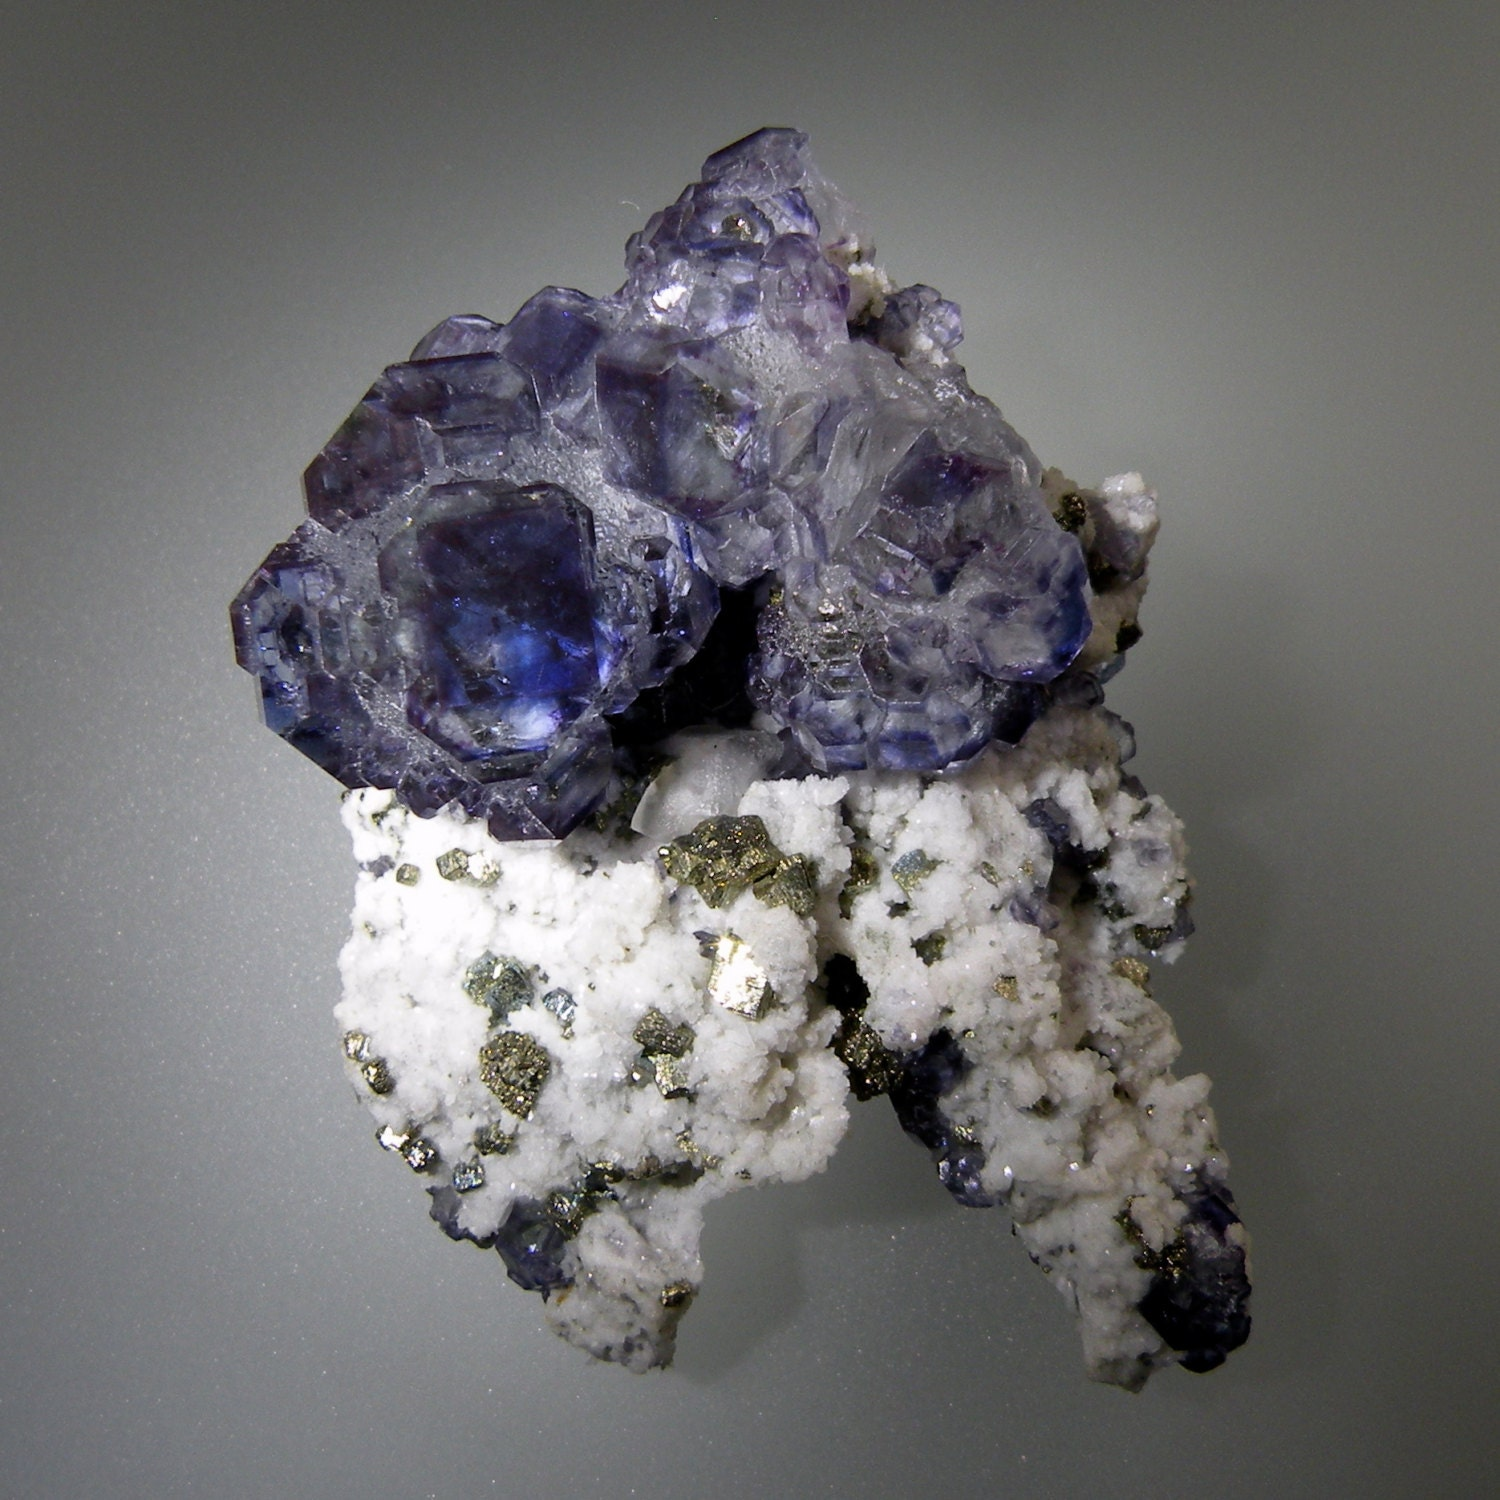 Fluorite Crystals with Pyrite on Calcite 100% by ...